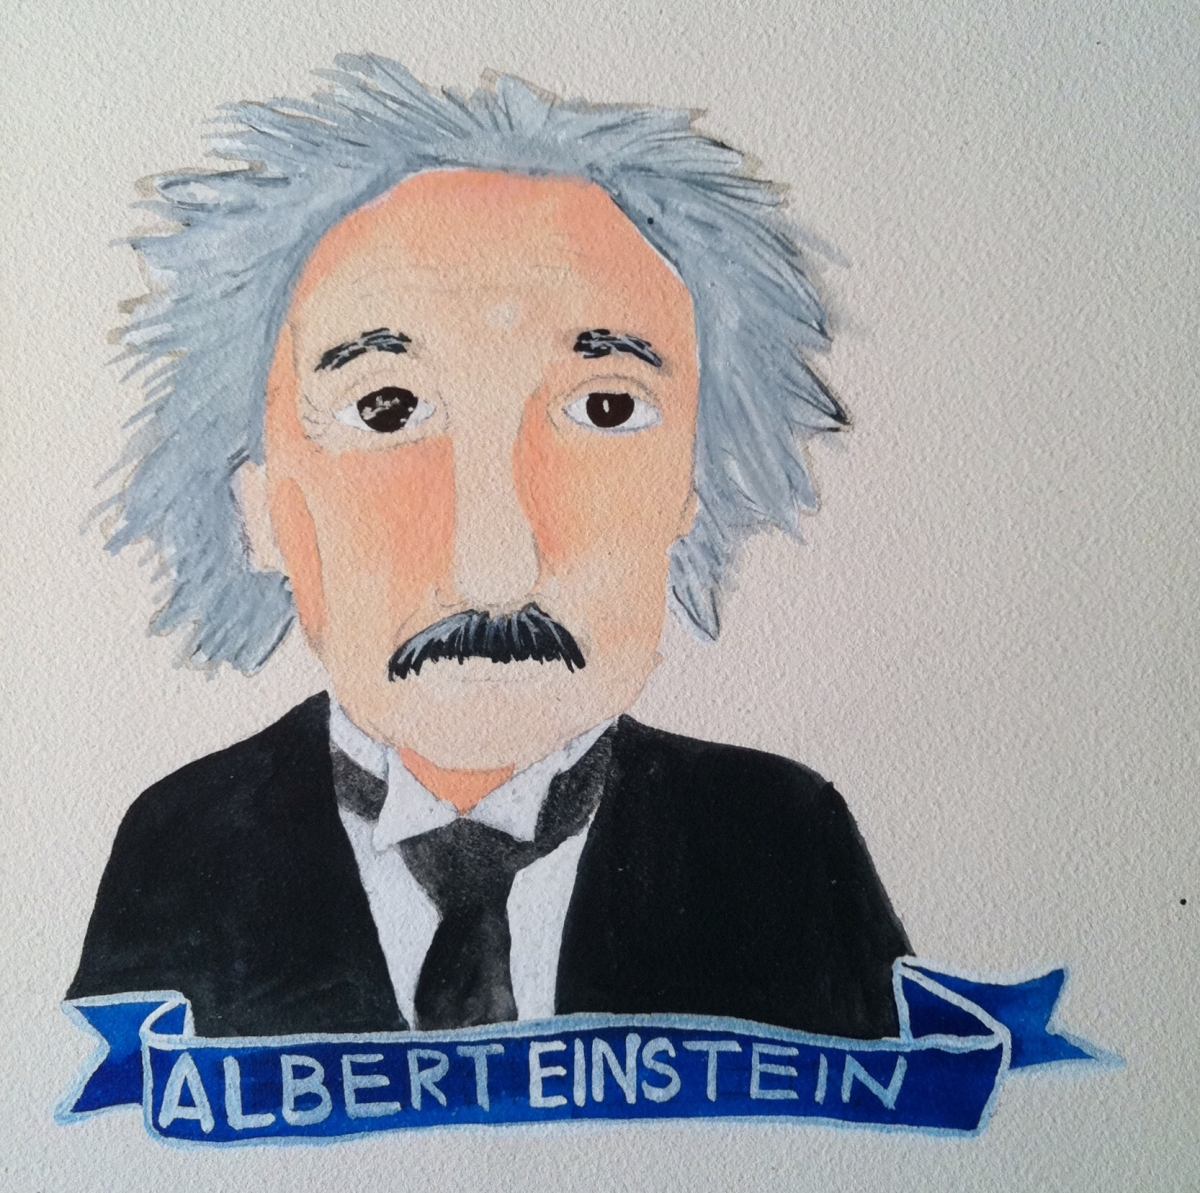 Talent Loves Company at Barbara Archer Gallery: 365 portraits by Lydia Walls - Albert Einstein